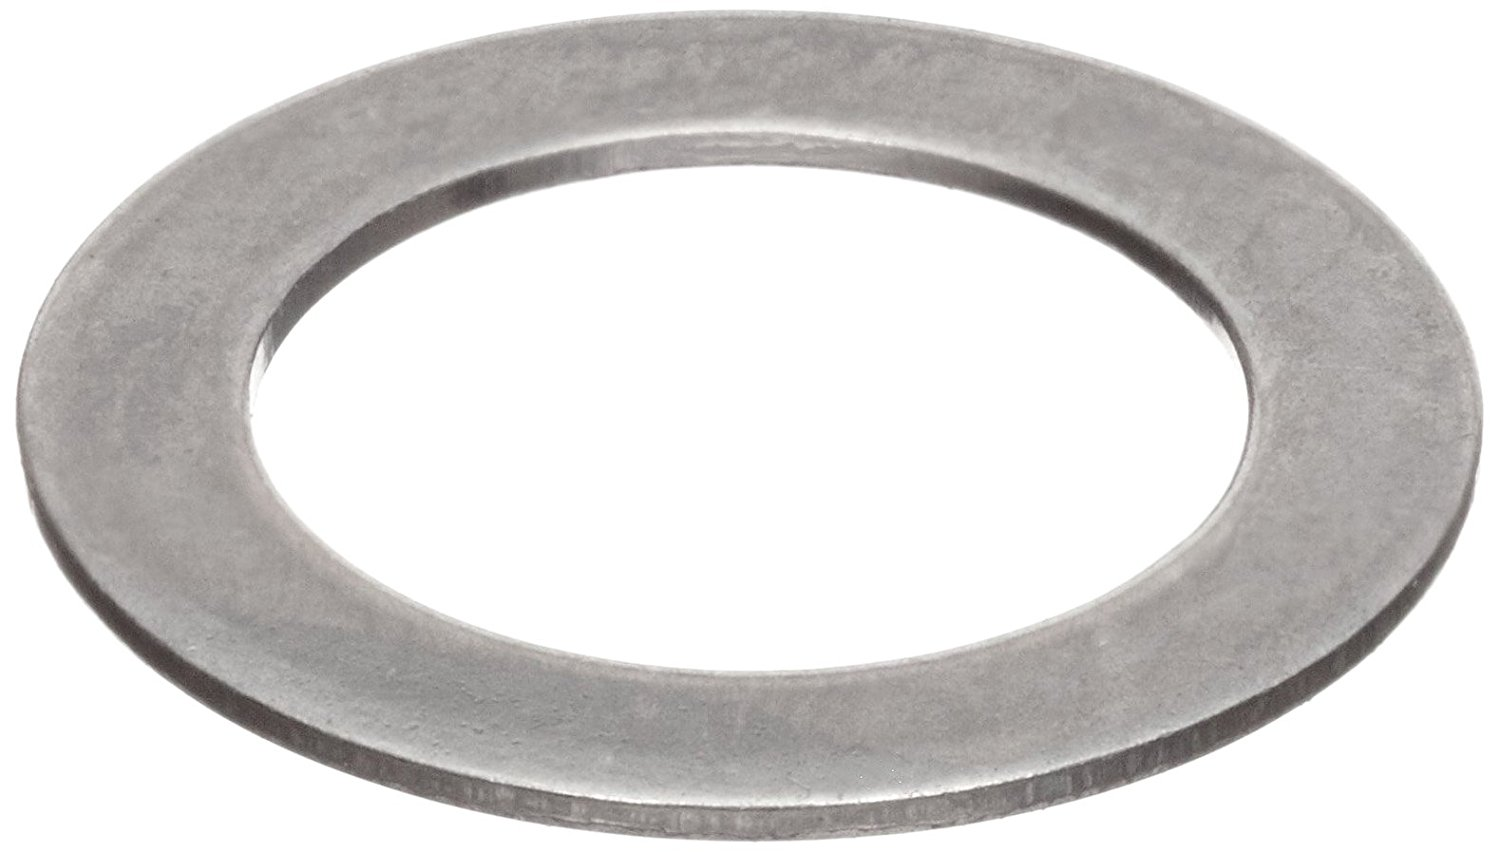 18-8 Stainless Steel Pack of 50 1//2 Bolt Size 0.501 ID 0.005 Thick .750 OD Shoulder-Shortening Shim Flat Washer